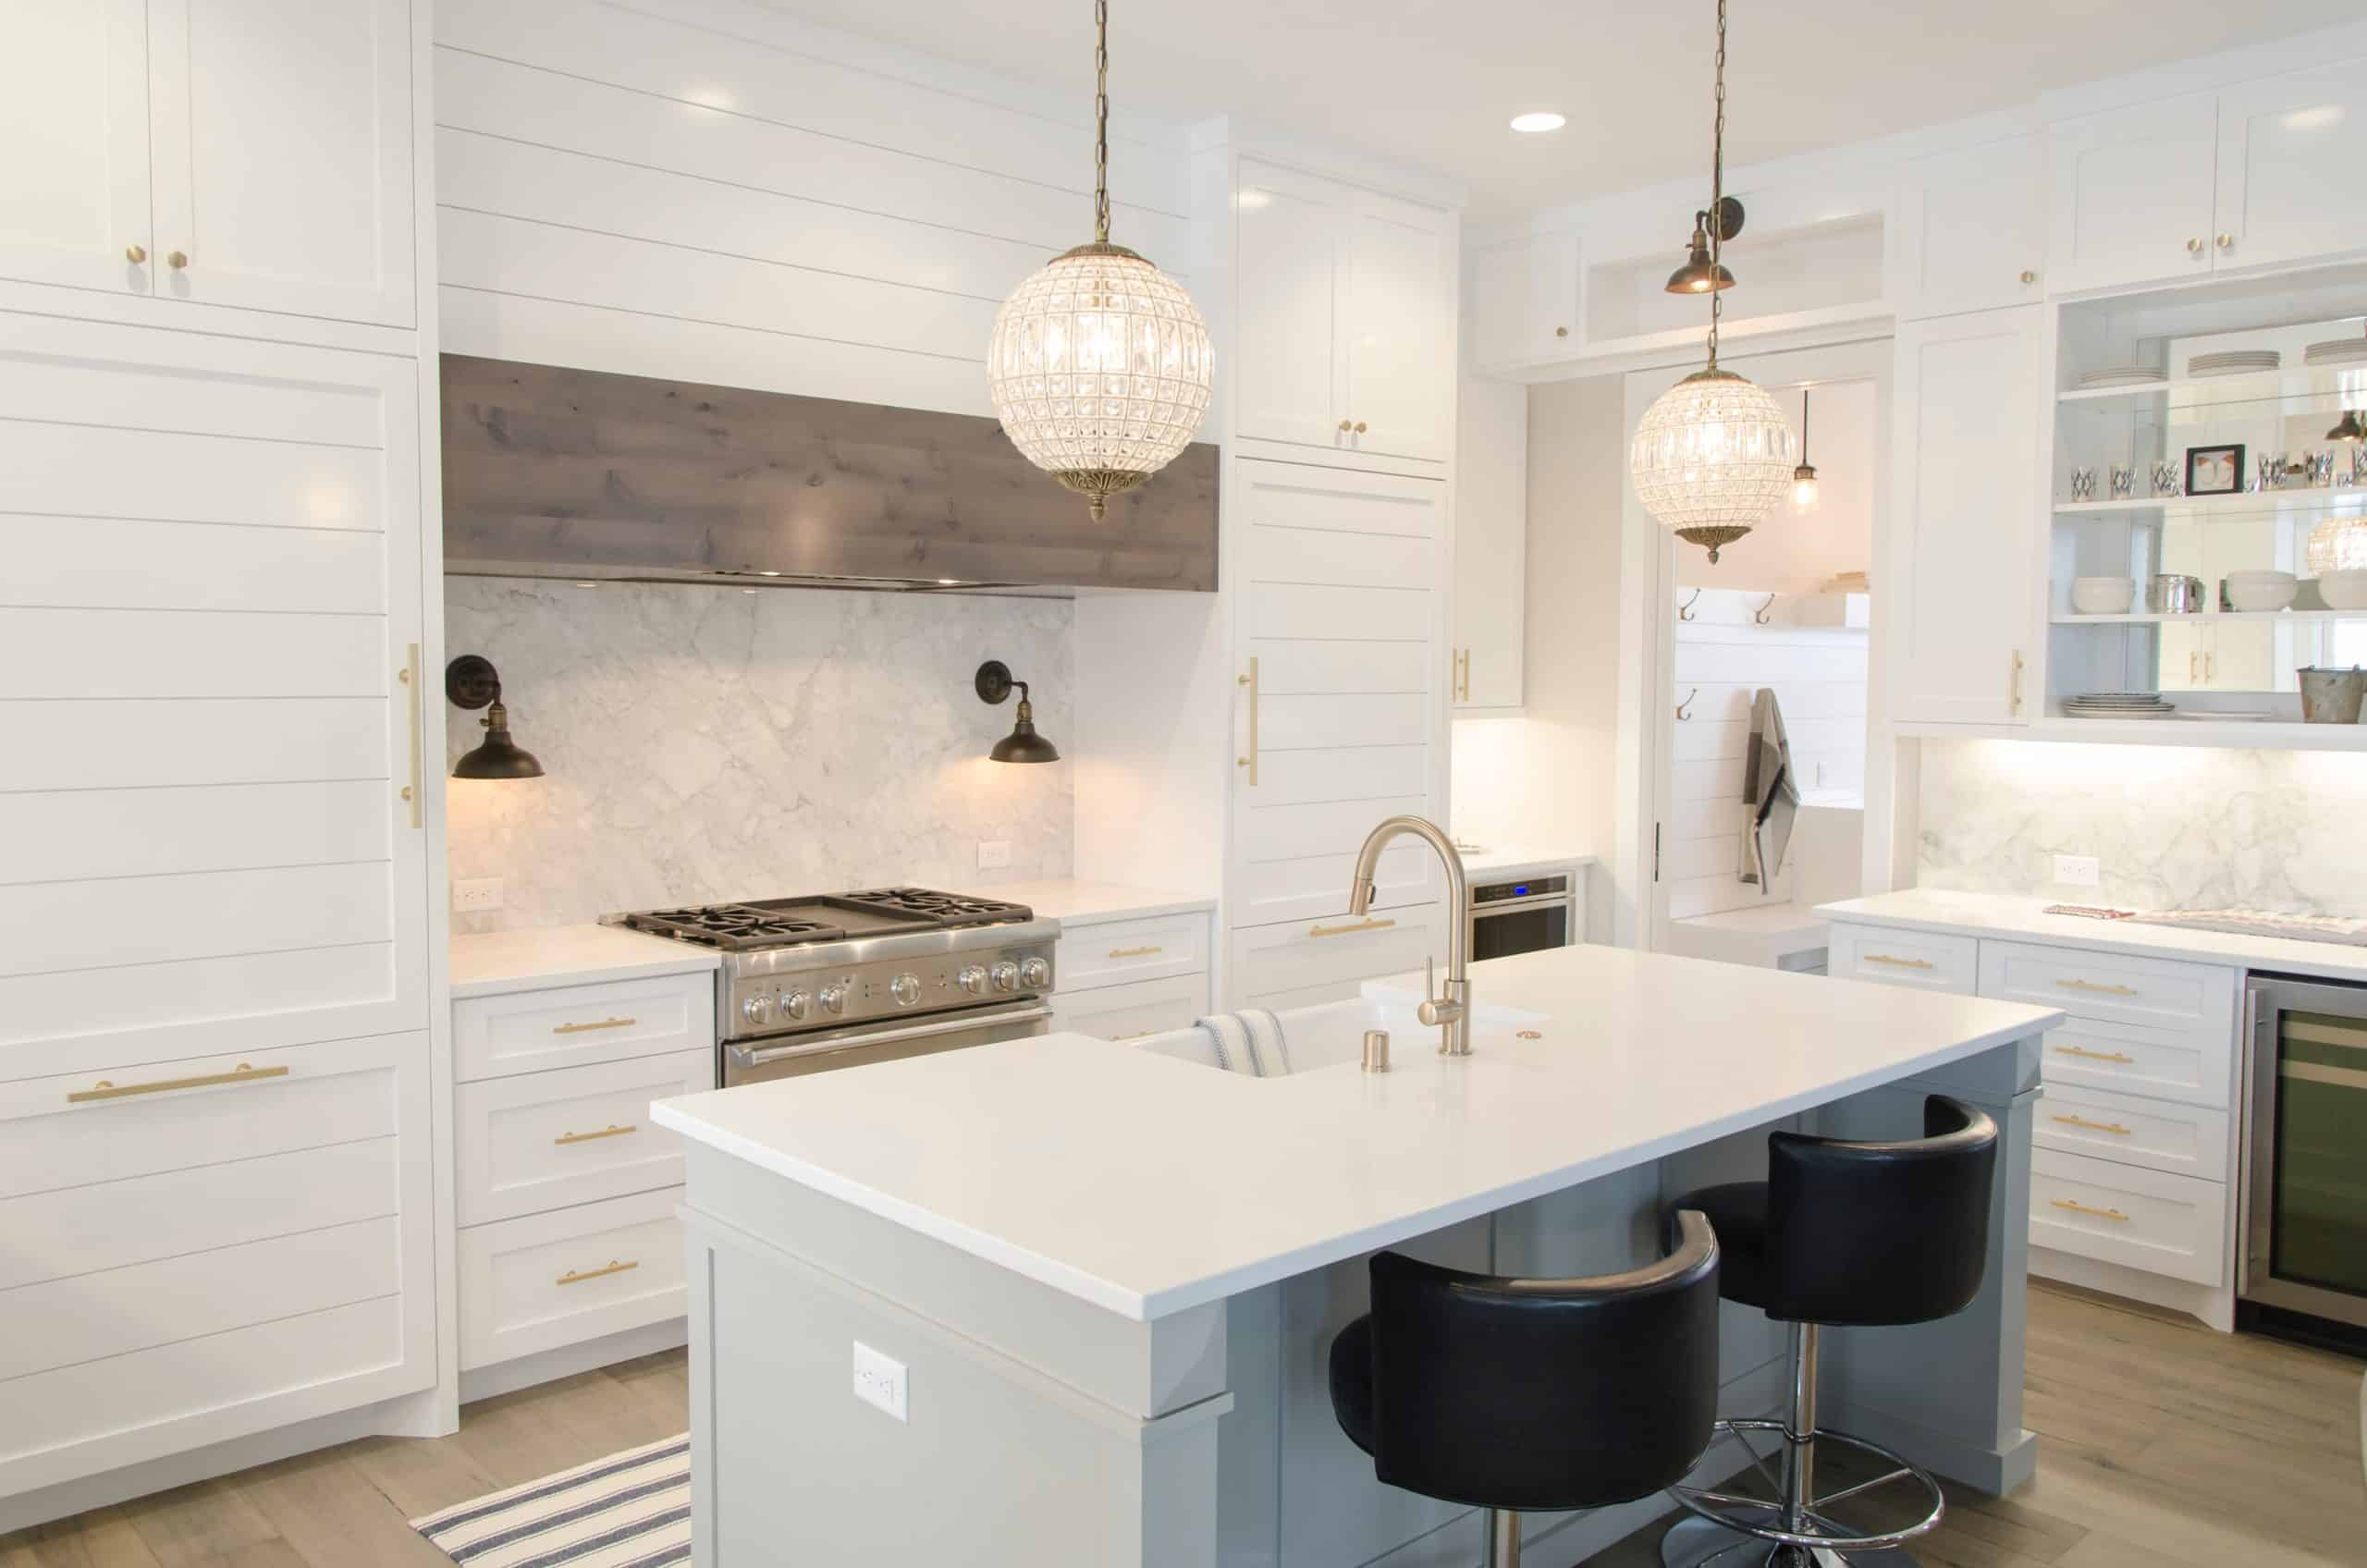 Cloud Kitchen Model Decoded: All You Need to Know About Cloud & Delivery Kitchens